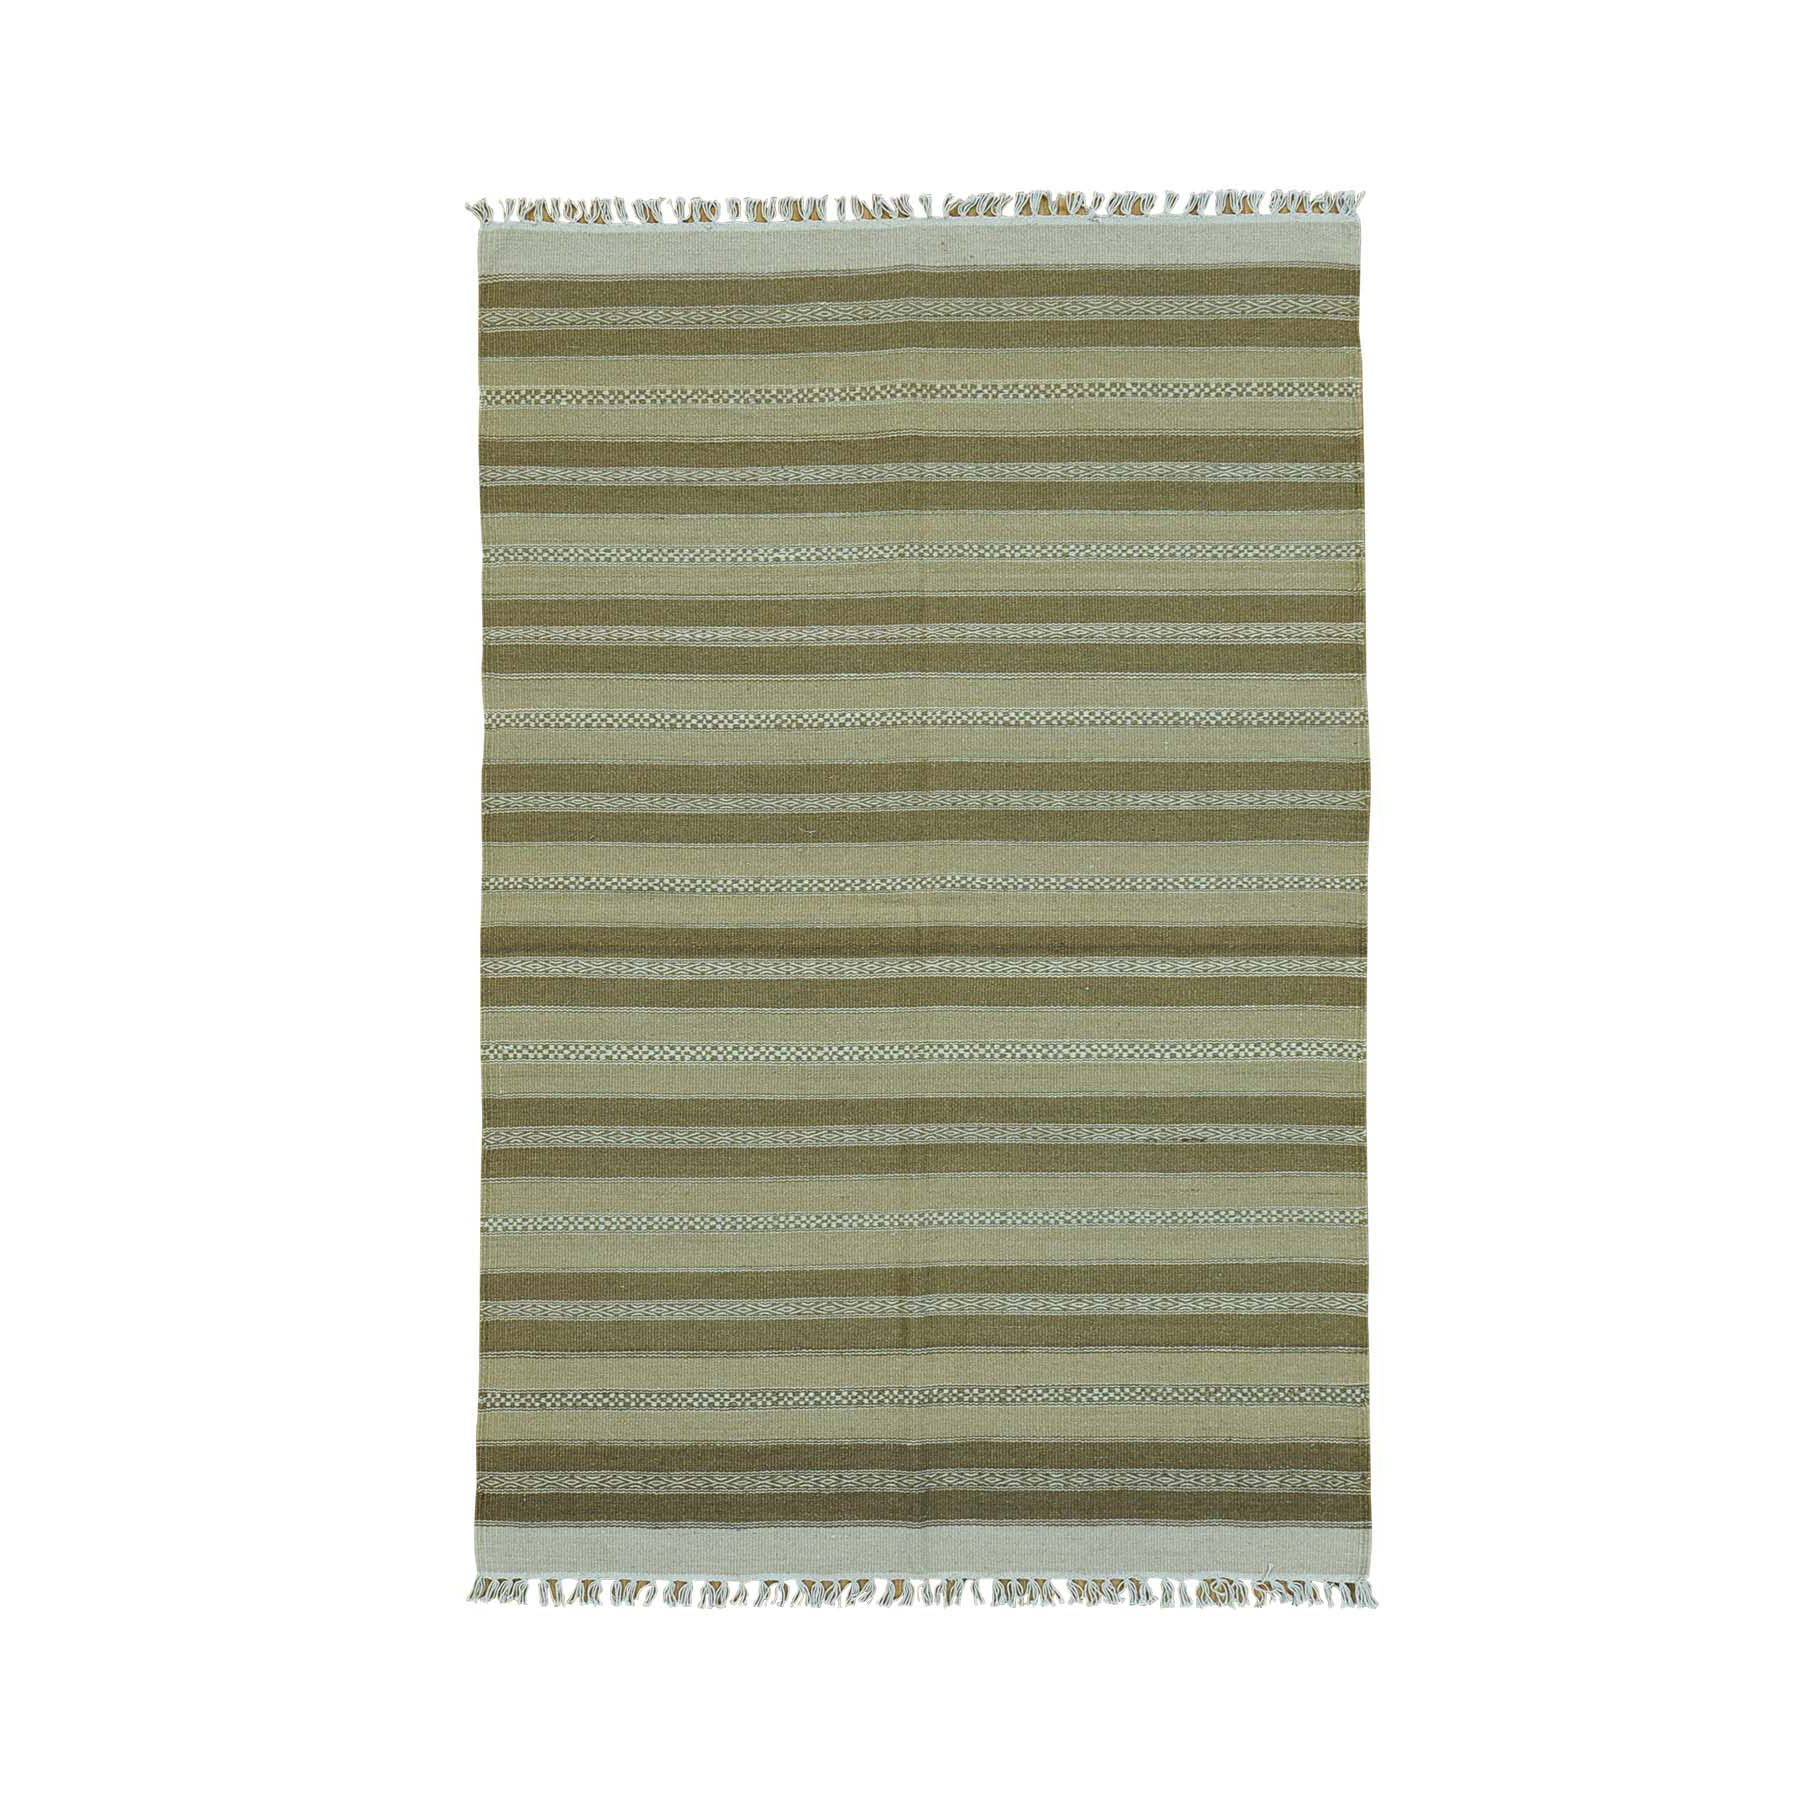 "3'10""X6' Pure Wool Reversible Flat Weave Striped Durie Kilim Rug moac00bb"